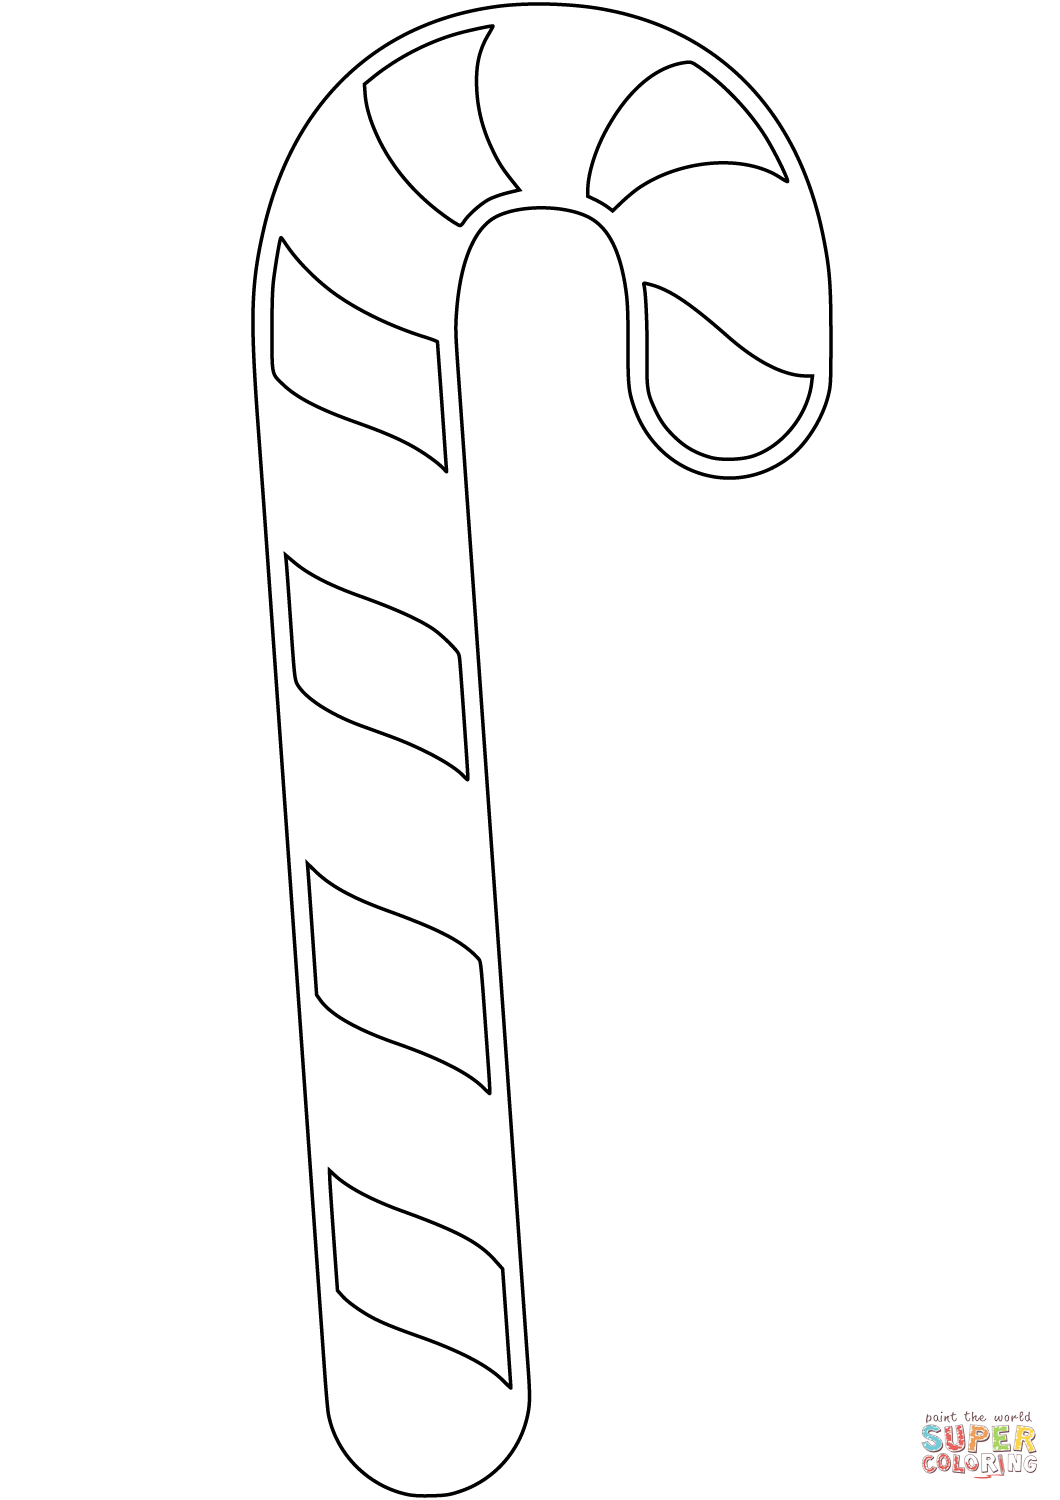 Candy Canes | Free Printable Templates & Coloring Pages ... | 1500x1060